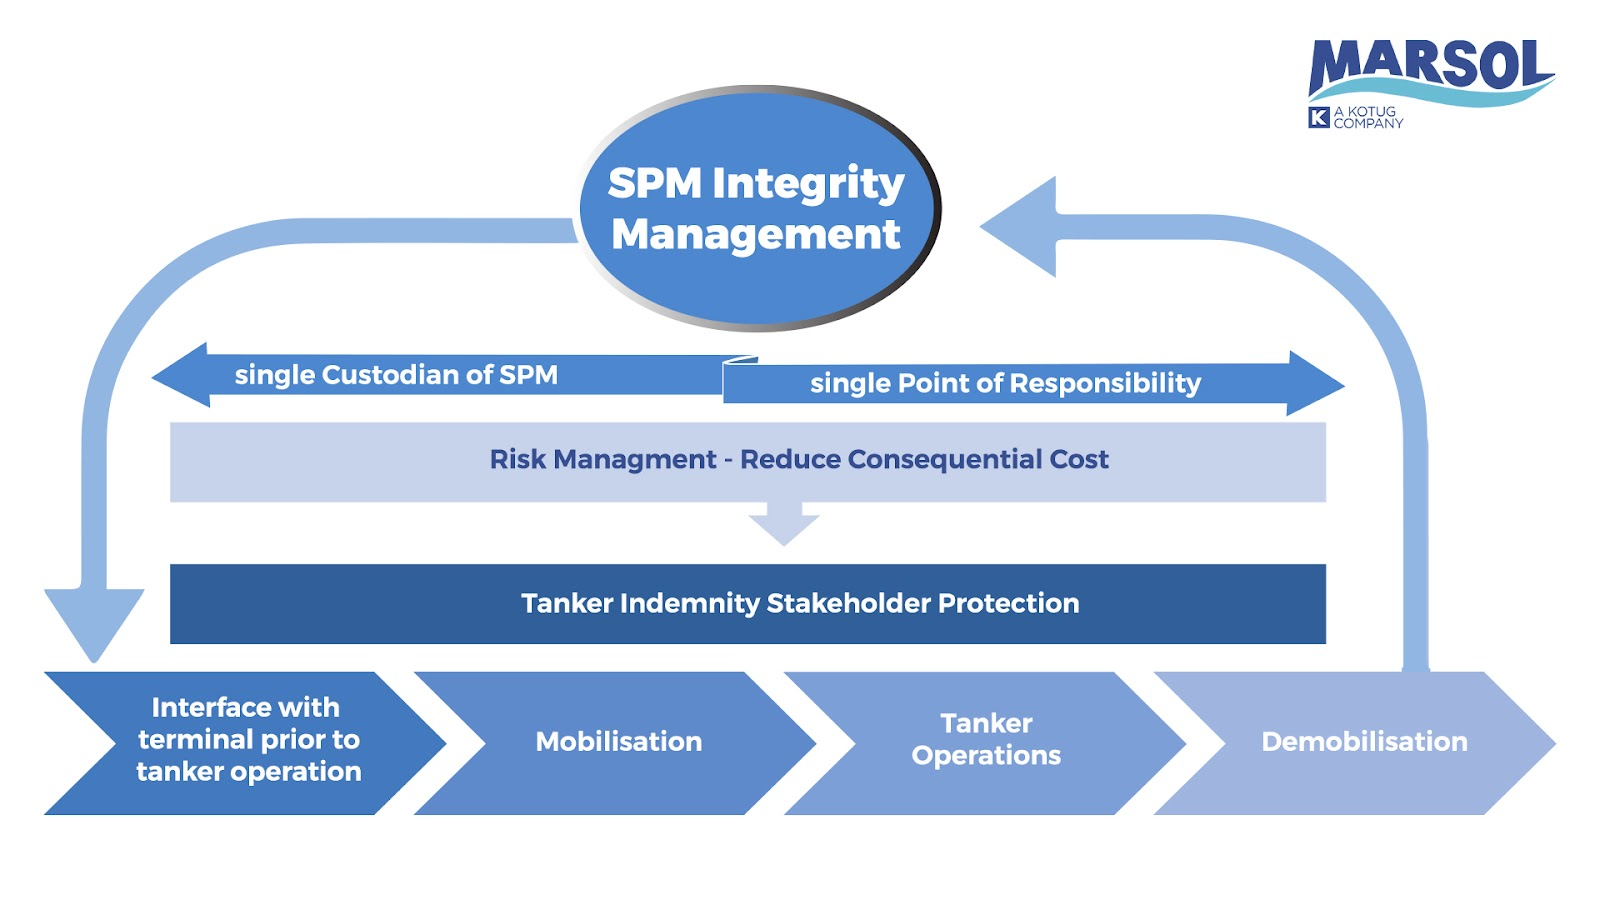 Offshore terminal risk mitigation within the SPM integrity Management process flow